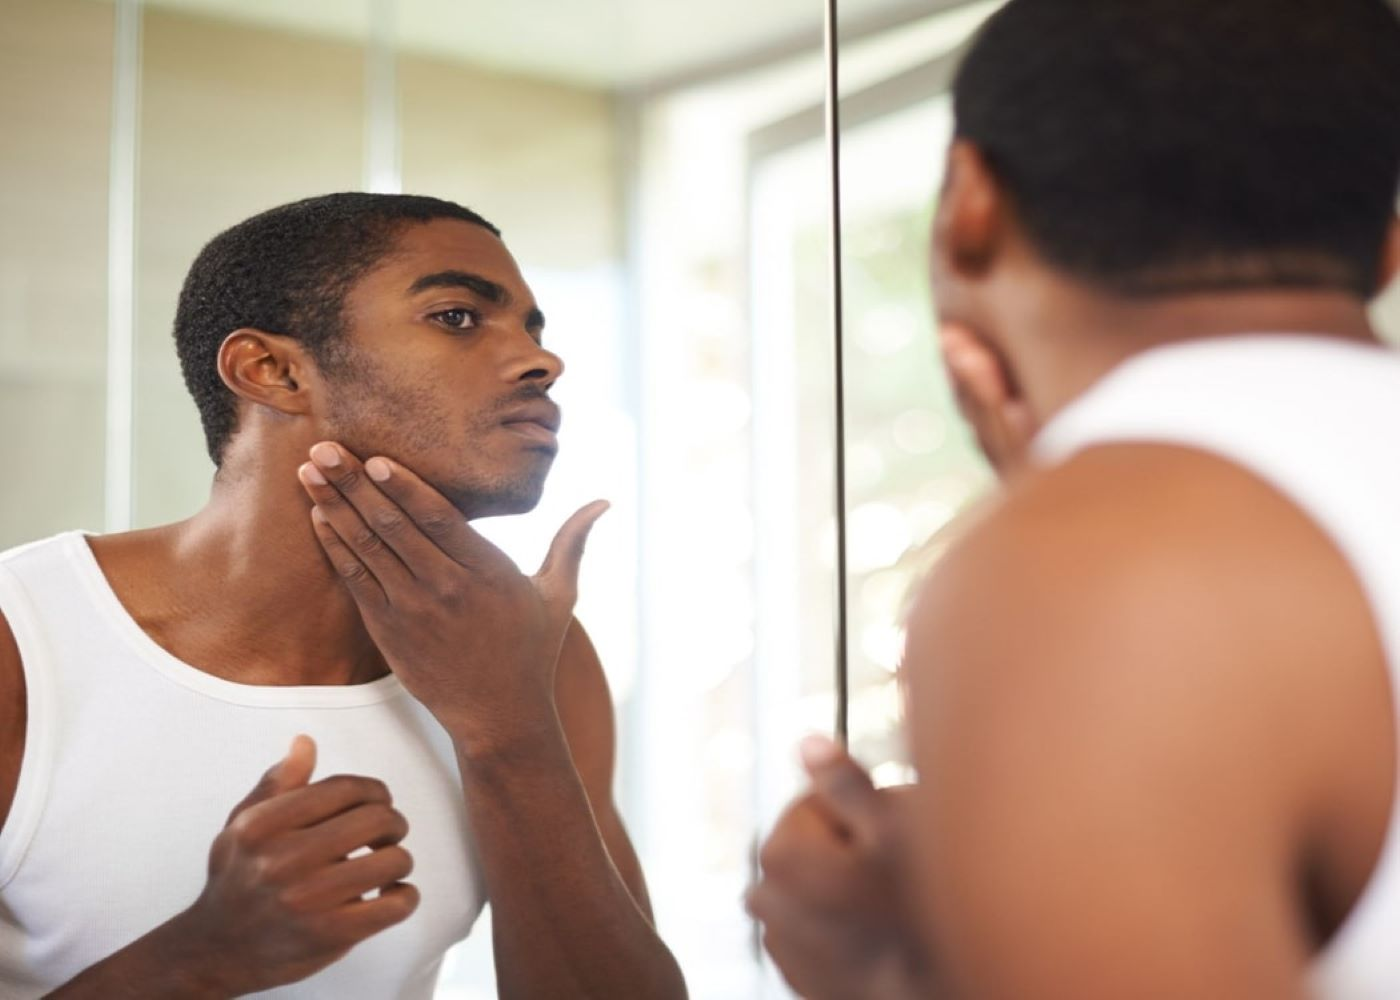 Wet Shave or Dry Shave: Which is Best for You?